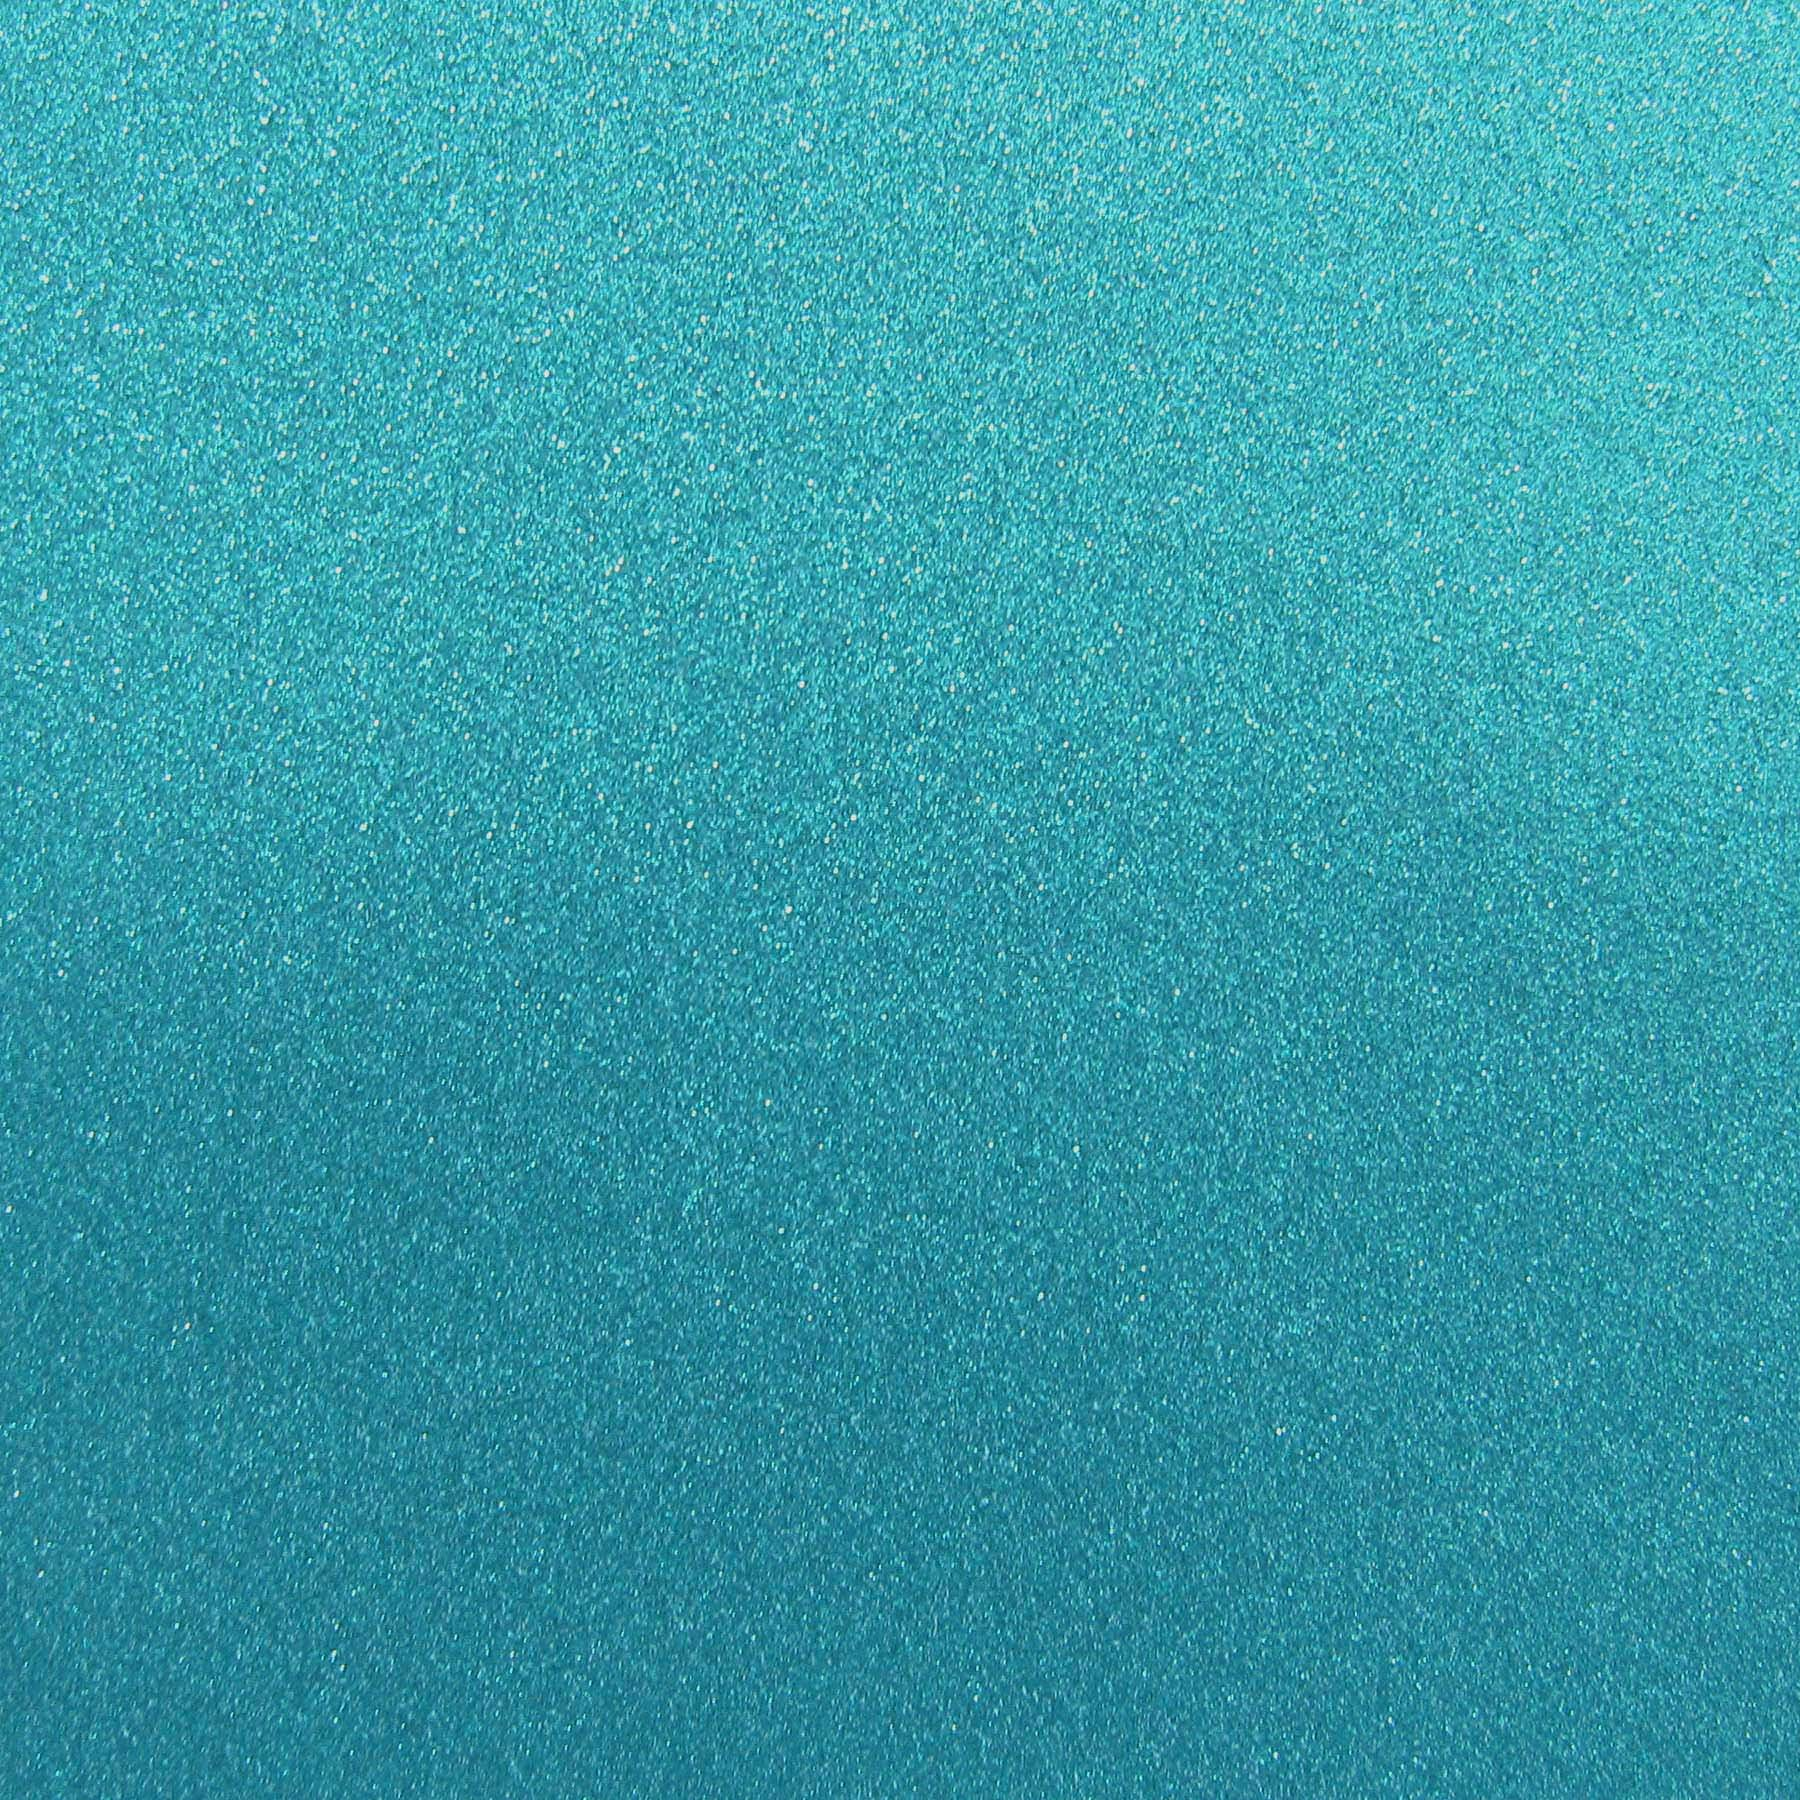 Best Creation 12-Inch by 12-Inch Glitter Cardstock, Ocean Blue by Best Creation Inc.